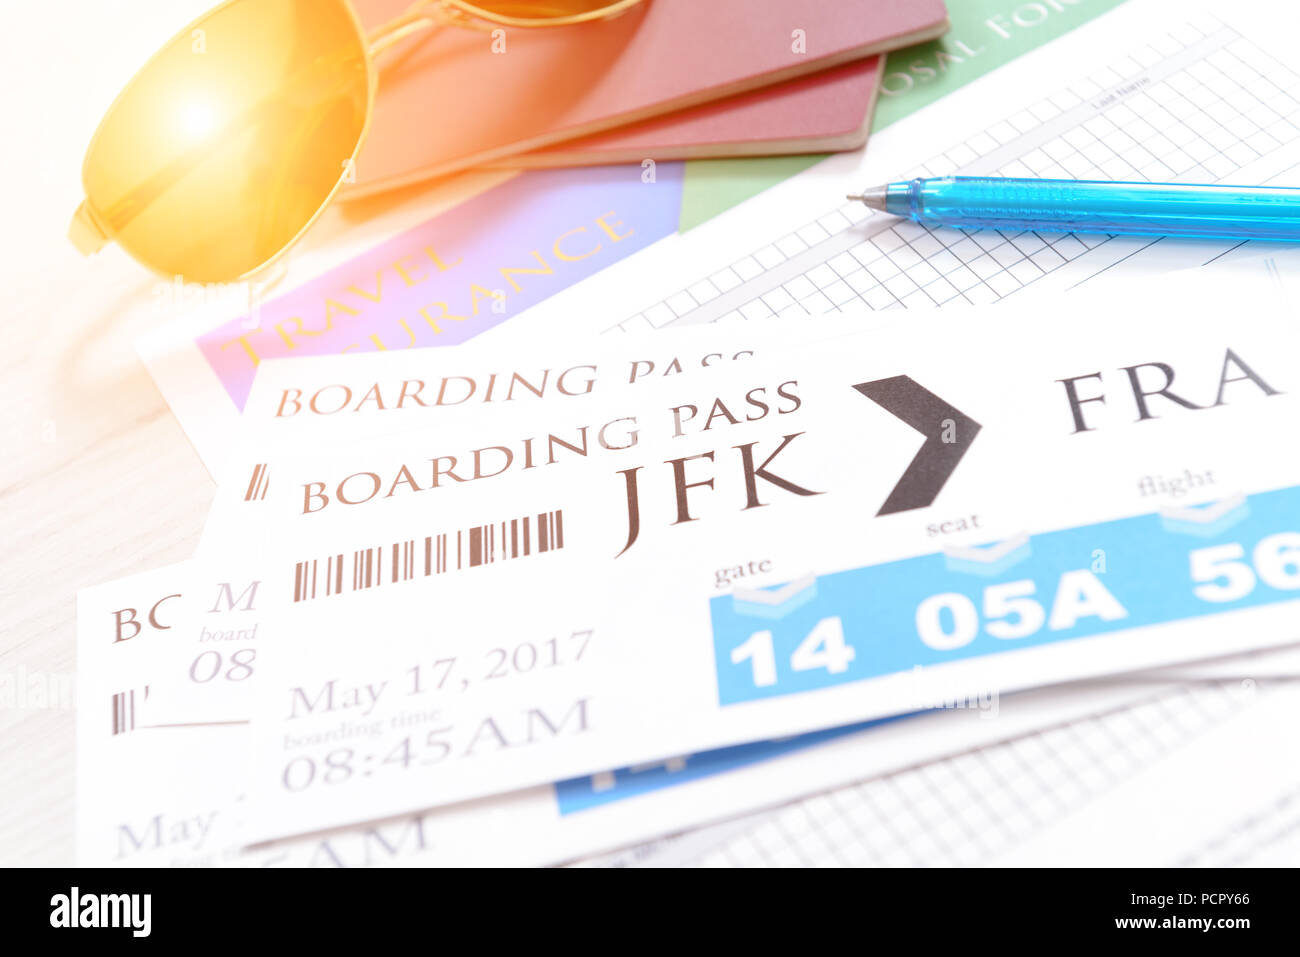 Airline boarding pass tickets with travel insurance, passports, sunglasses, pen as a concept of traveling - Stock Image